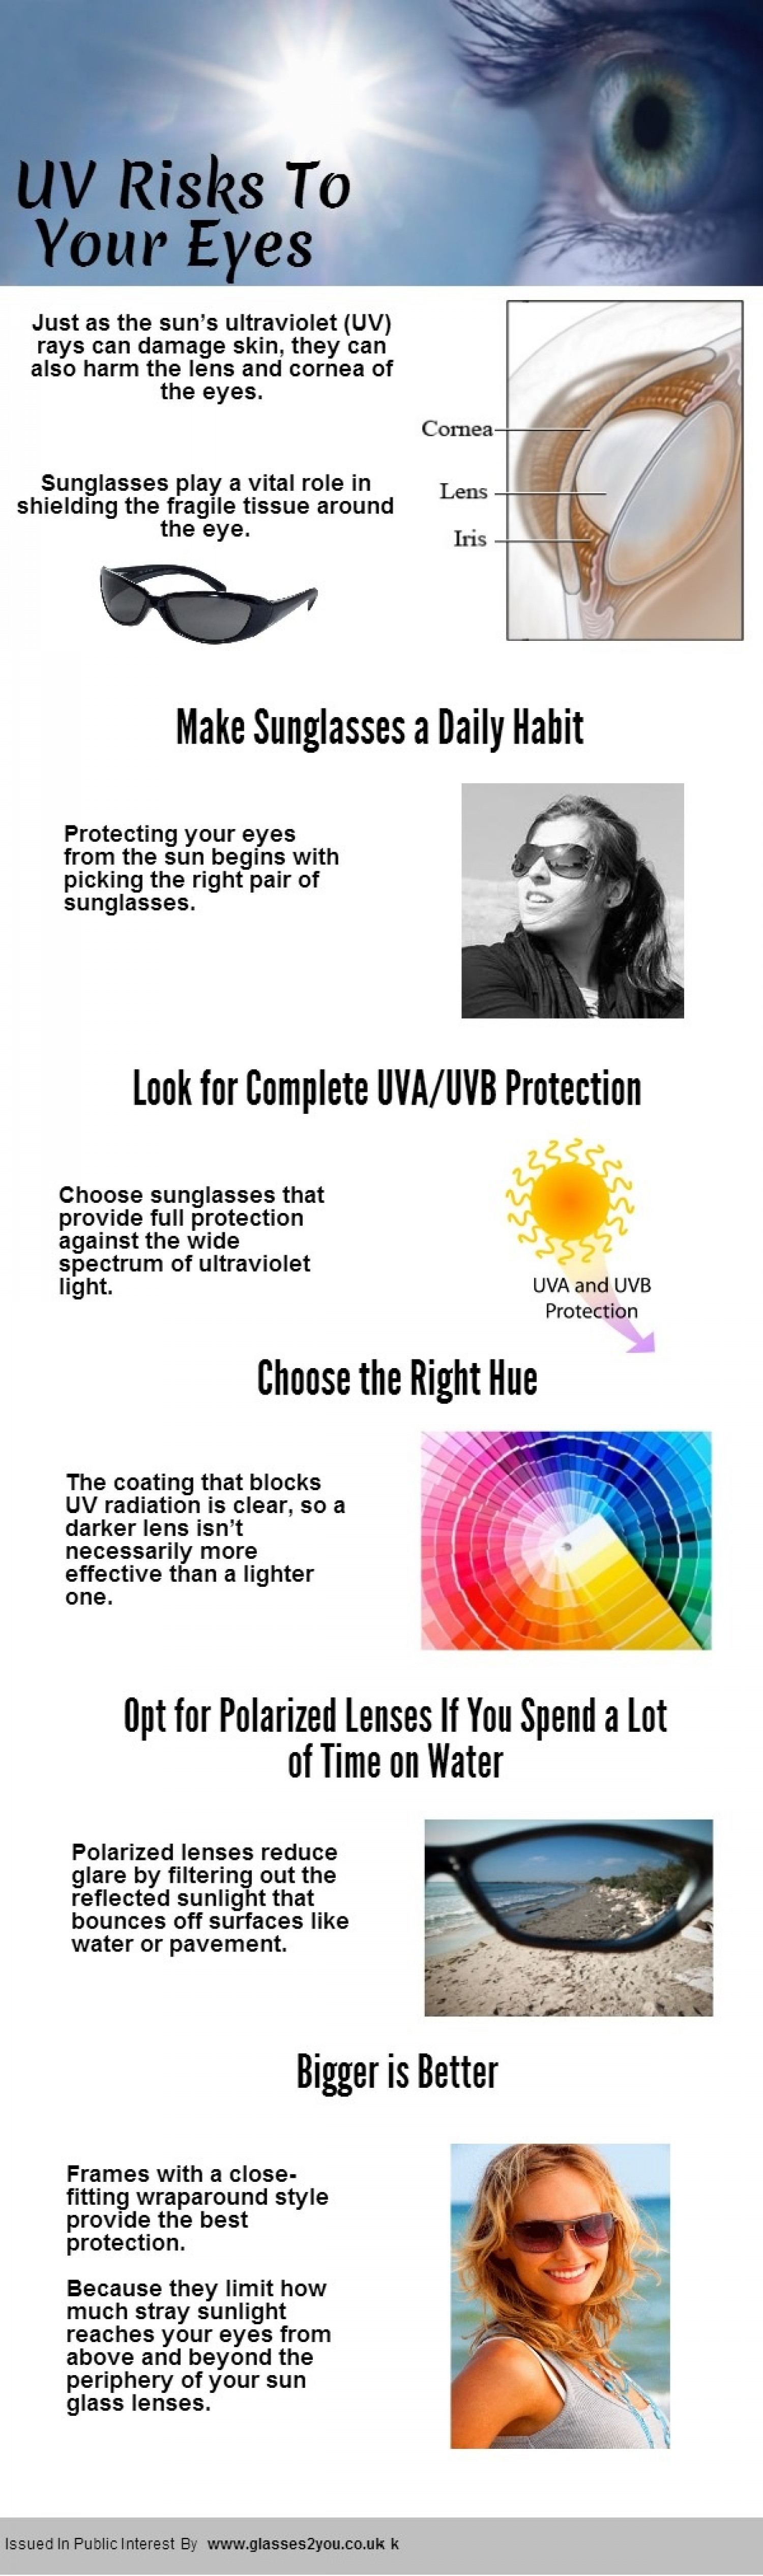 UV Risks To Your Eyes Infographic